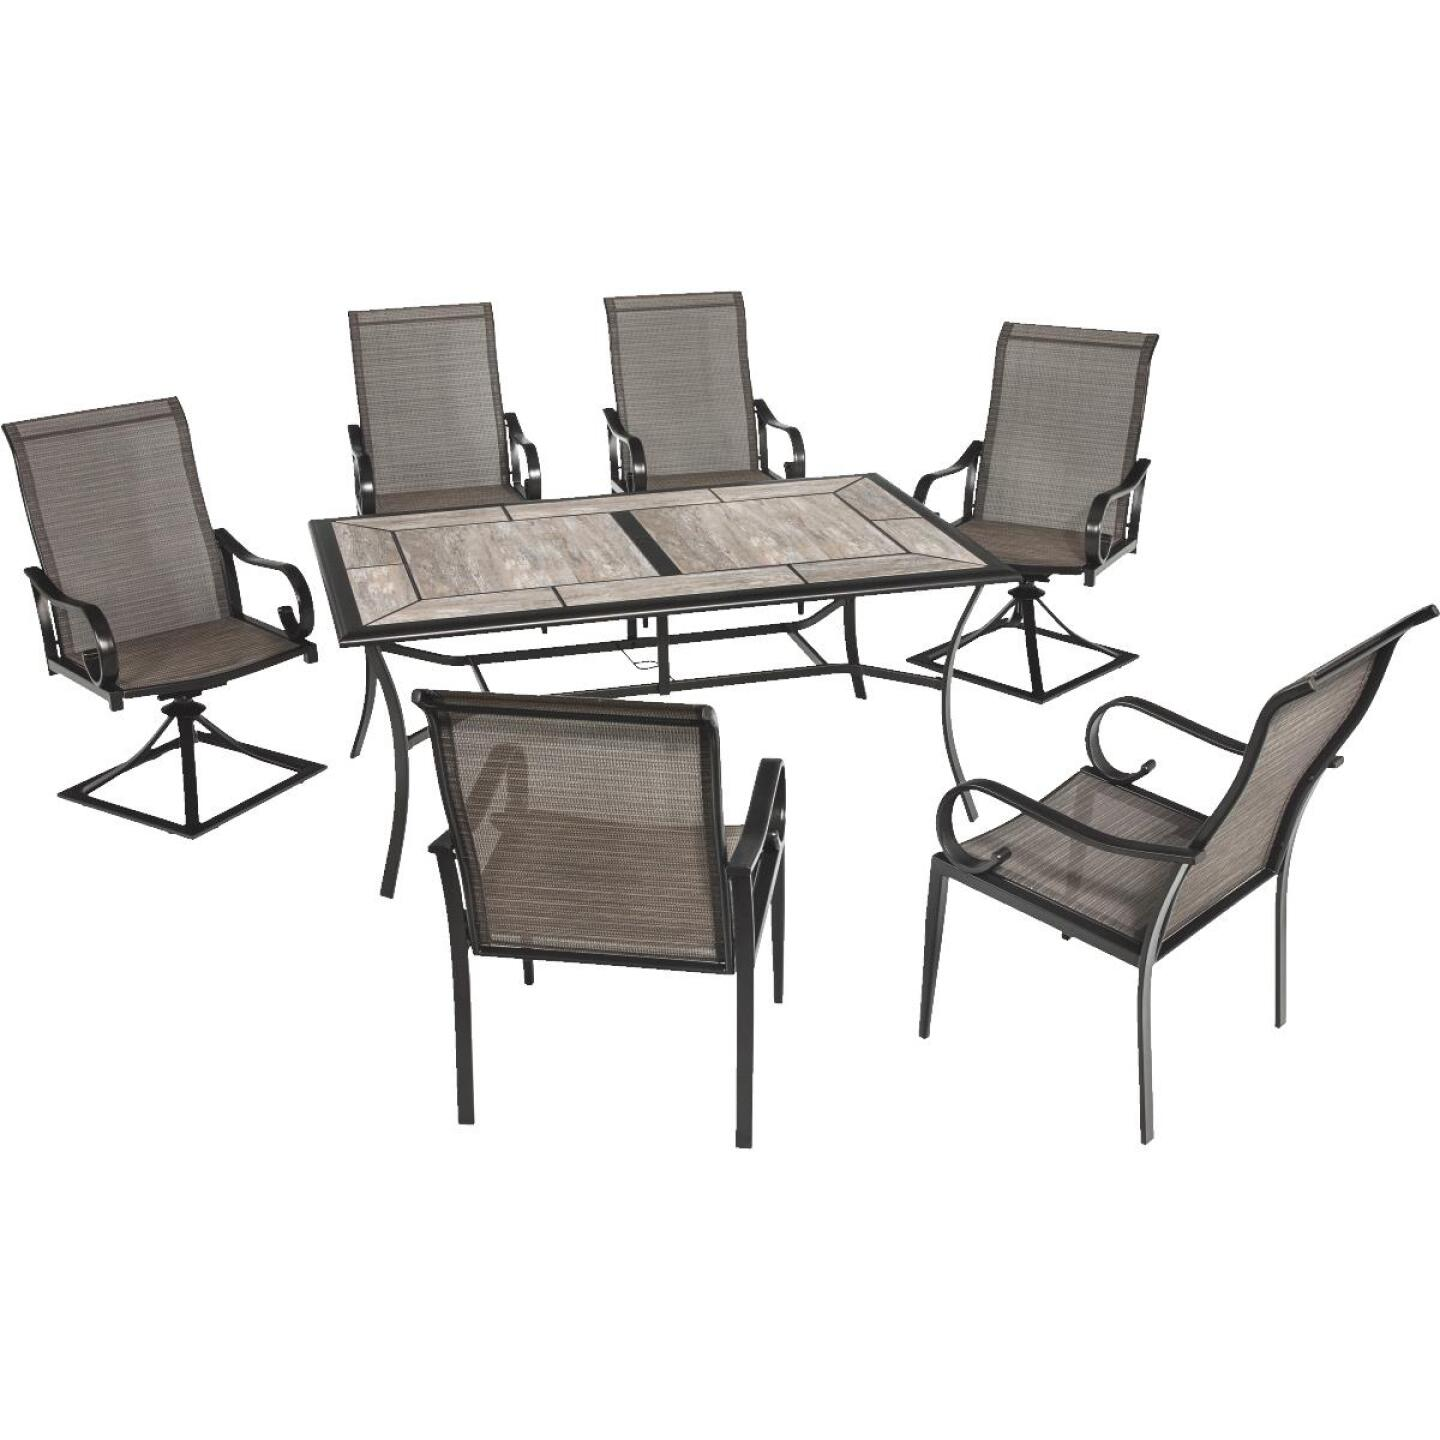 Outdoor Expressions Berkshire 7-Piece Dining Set Image 151